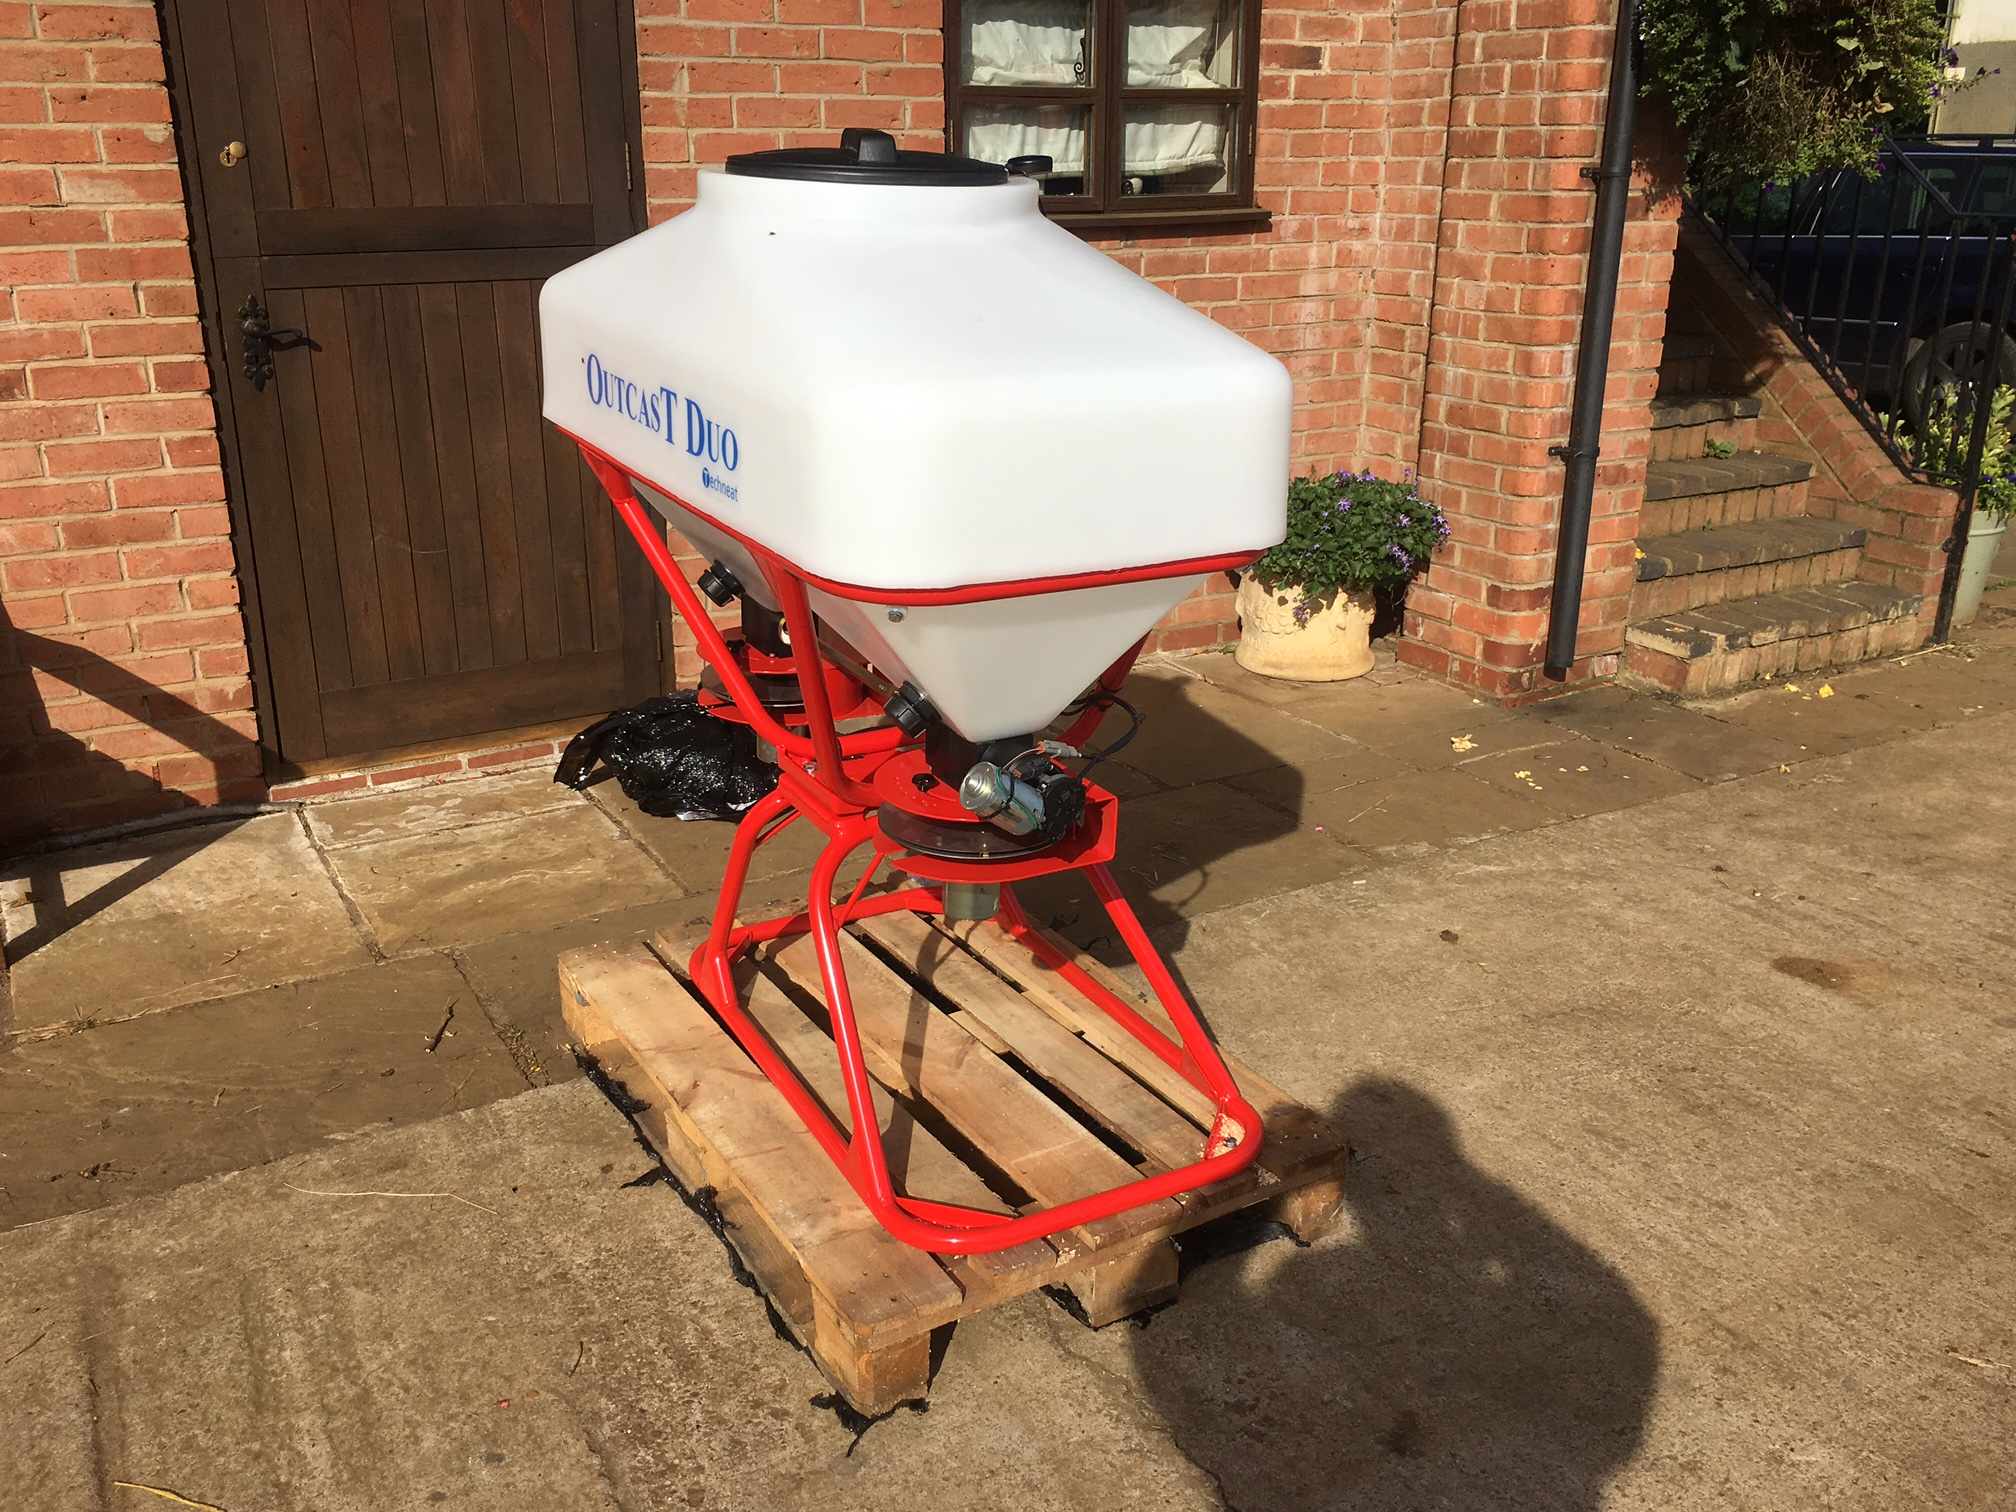 Techneat outcast duo 24 metre slug pelleter for sale